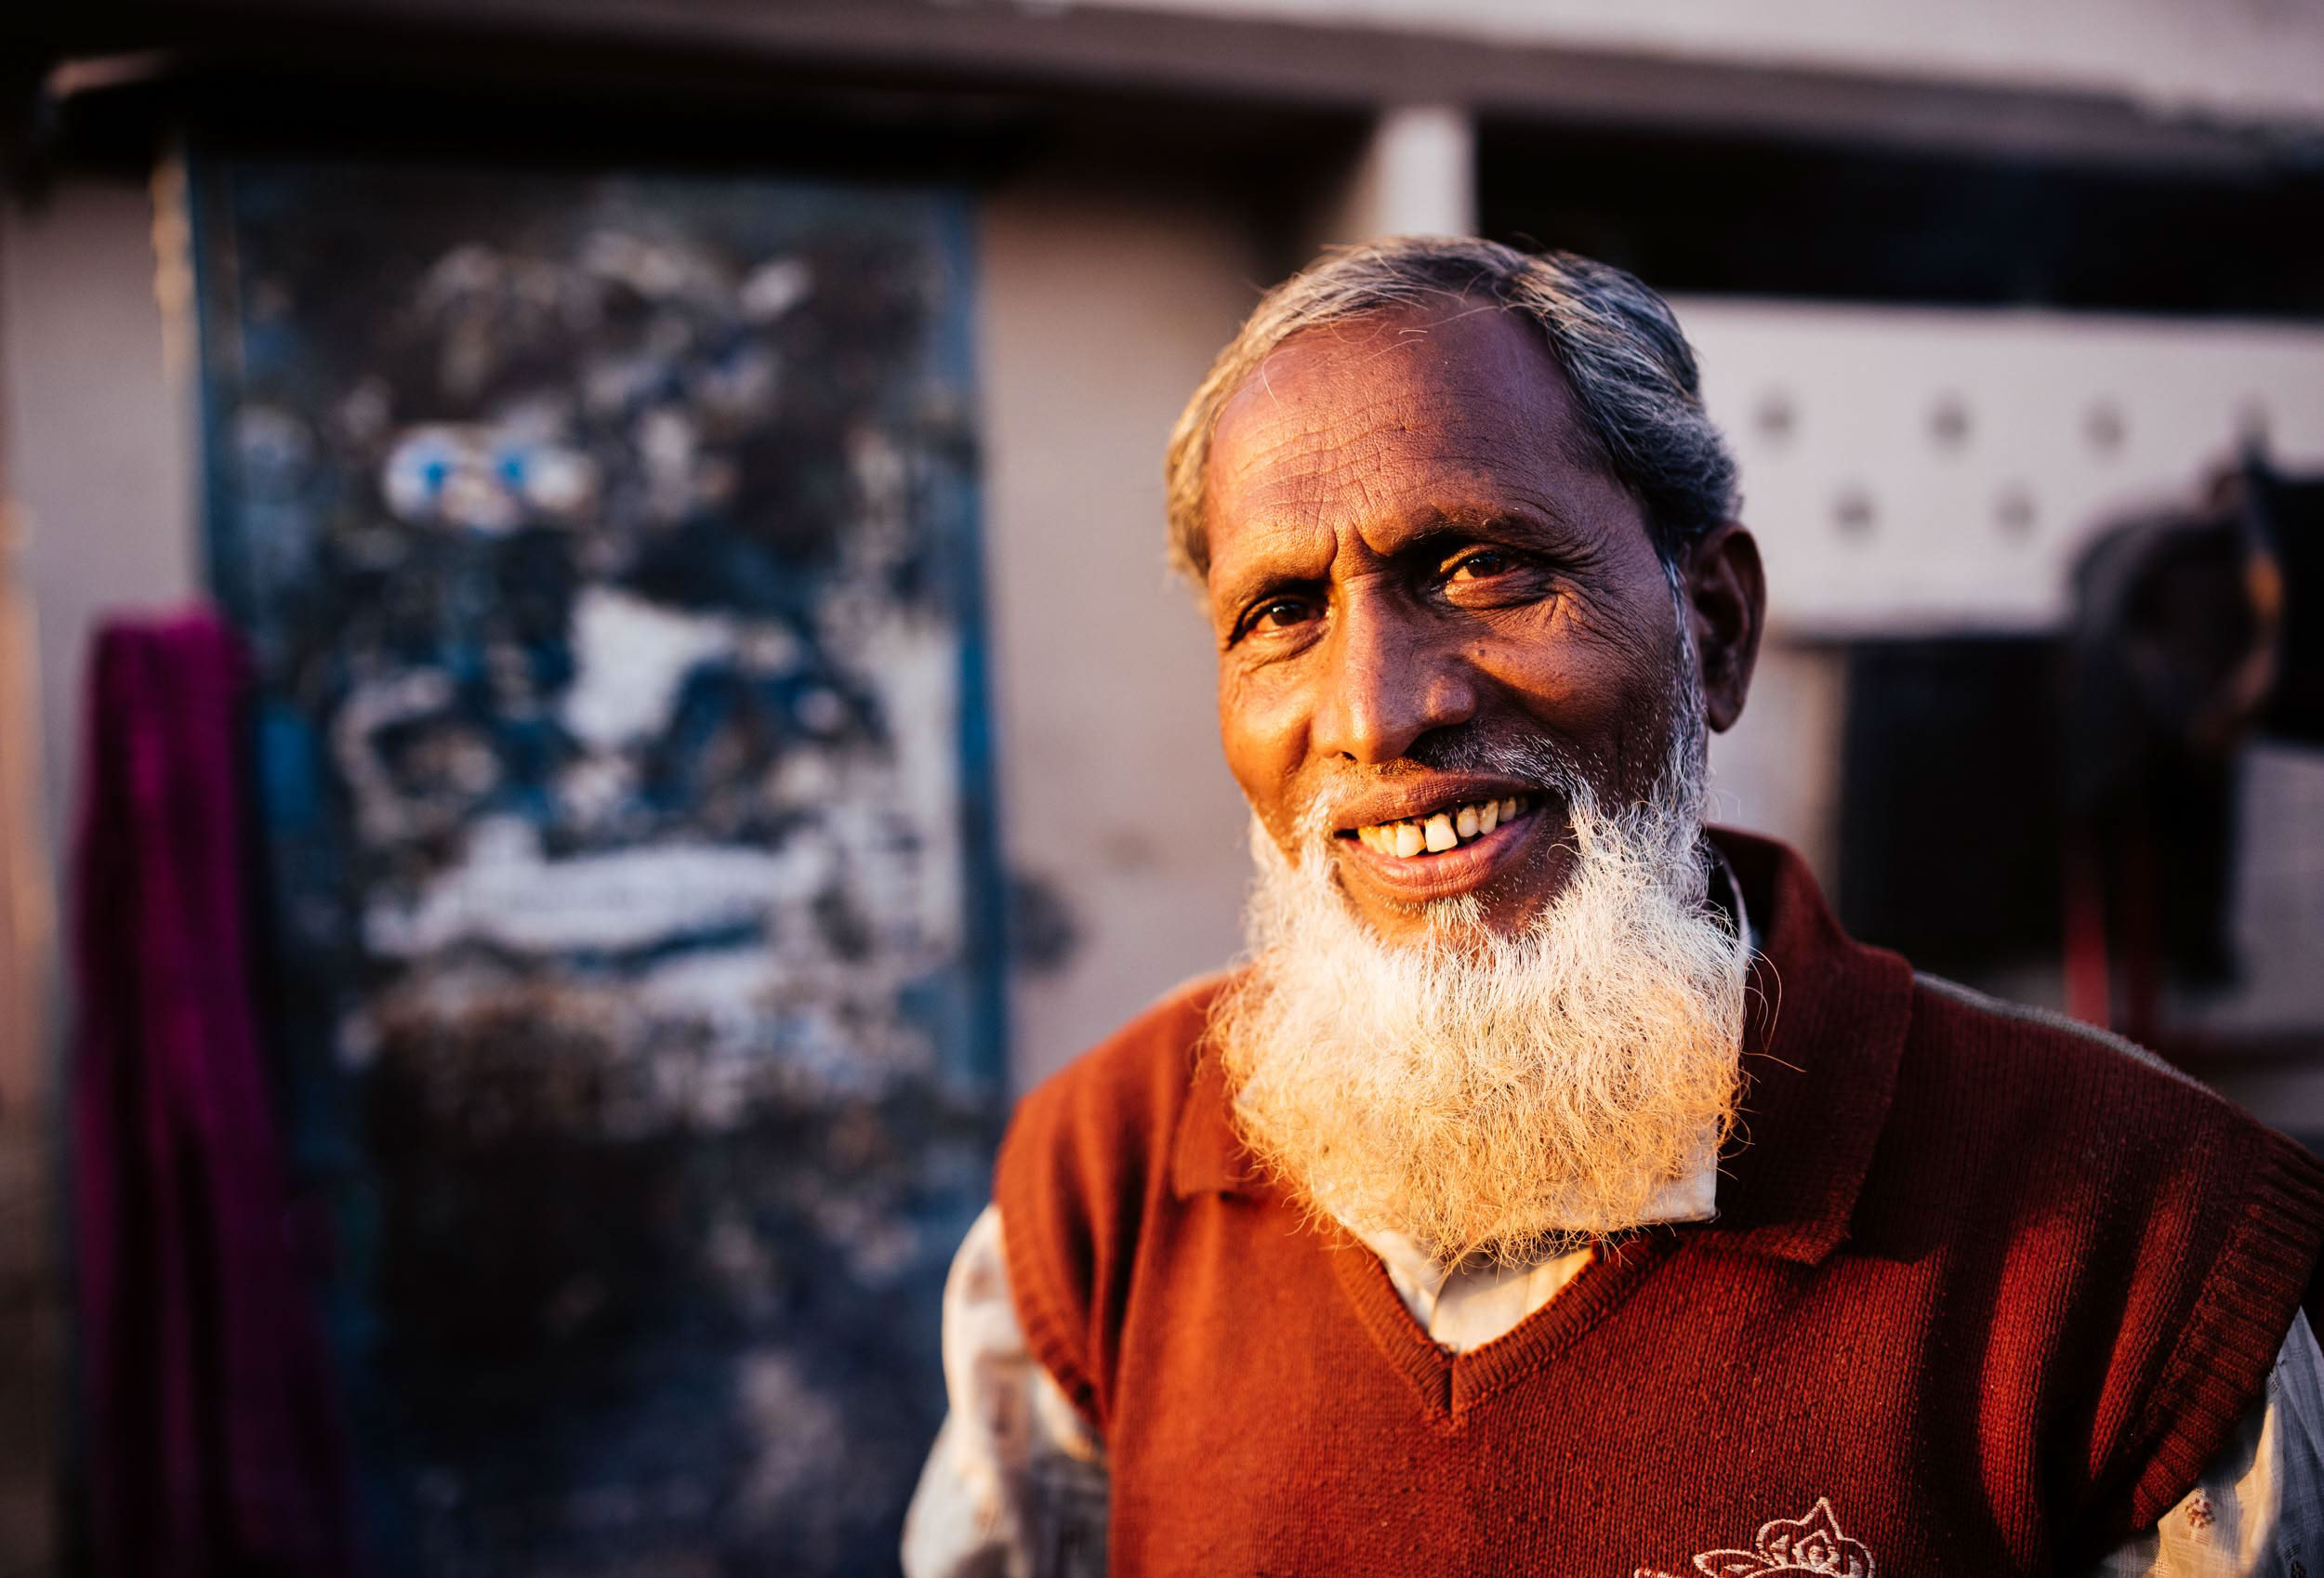 man-beard-smile-portrait-mathura-uttar-pradesh-india